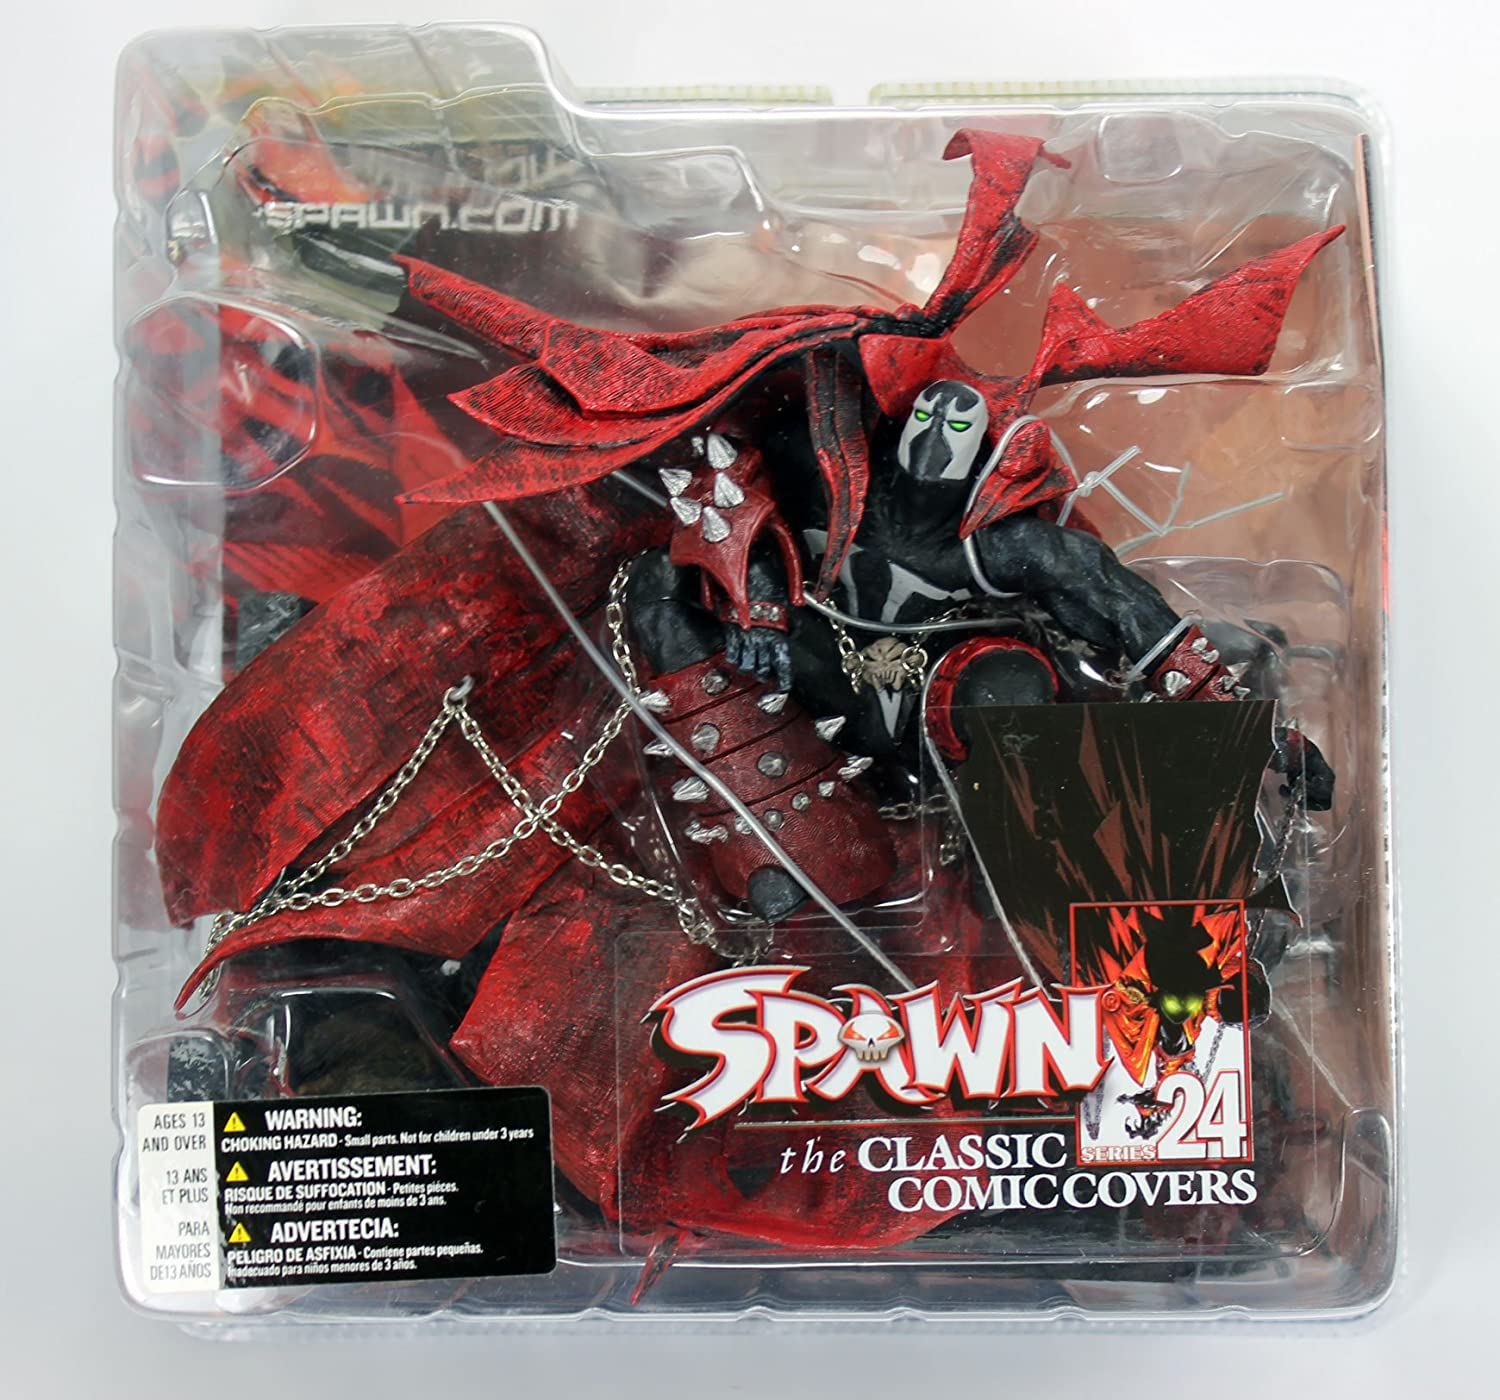 MOCCA Museum Spawn Retrospective Spawn #1 Postcard Signed by Todd McFarlane